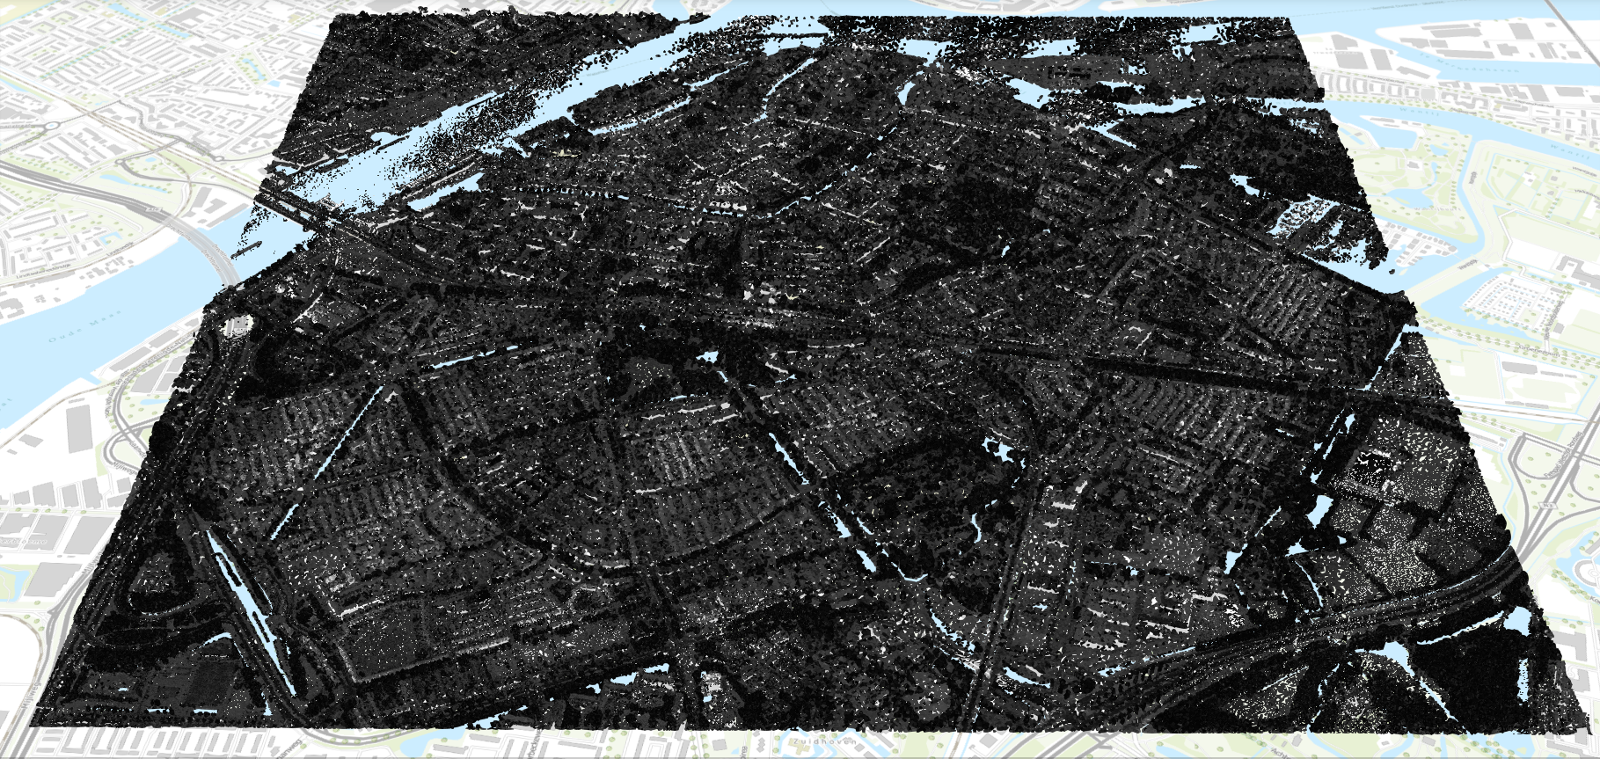 AHN point cloud of Dordrecht region